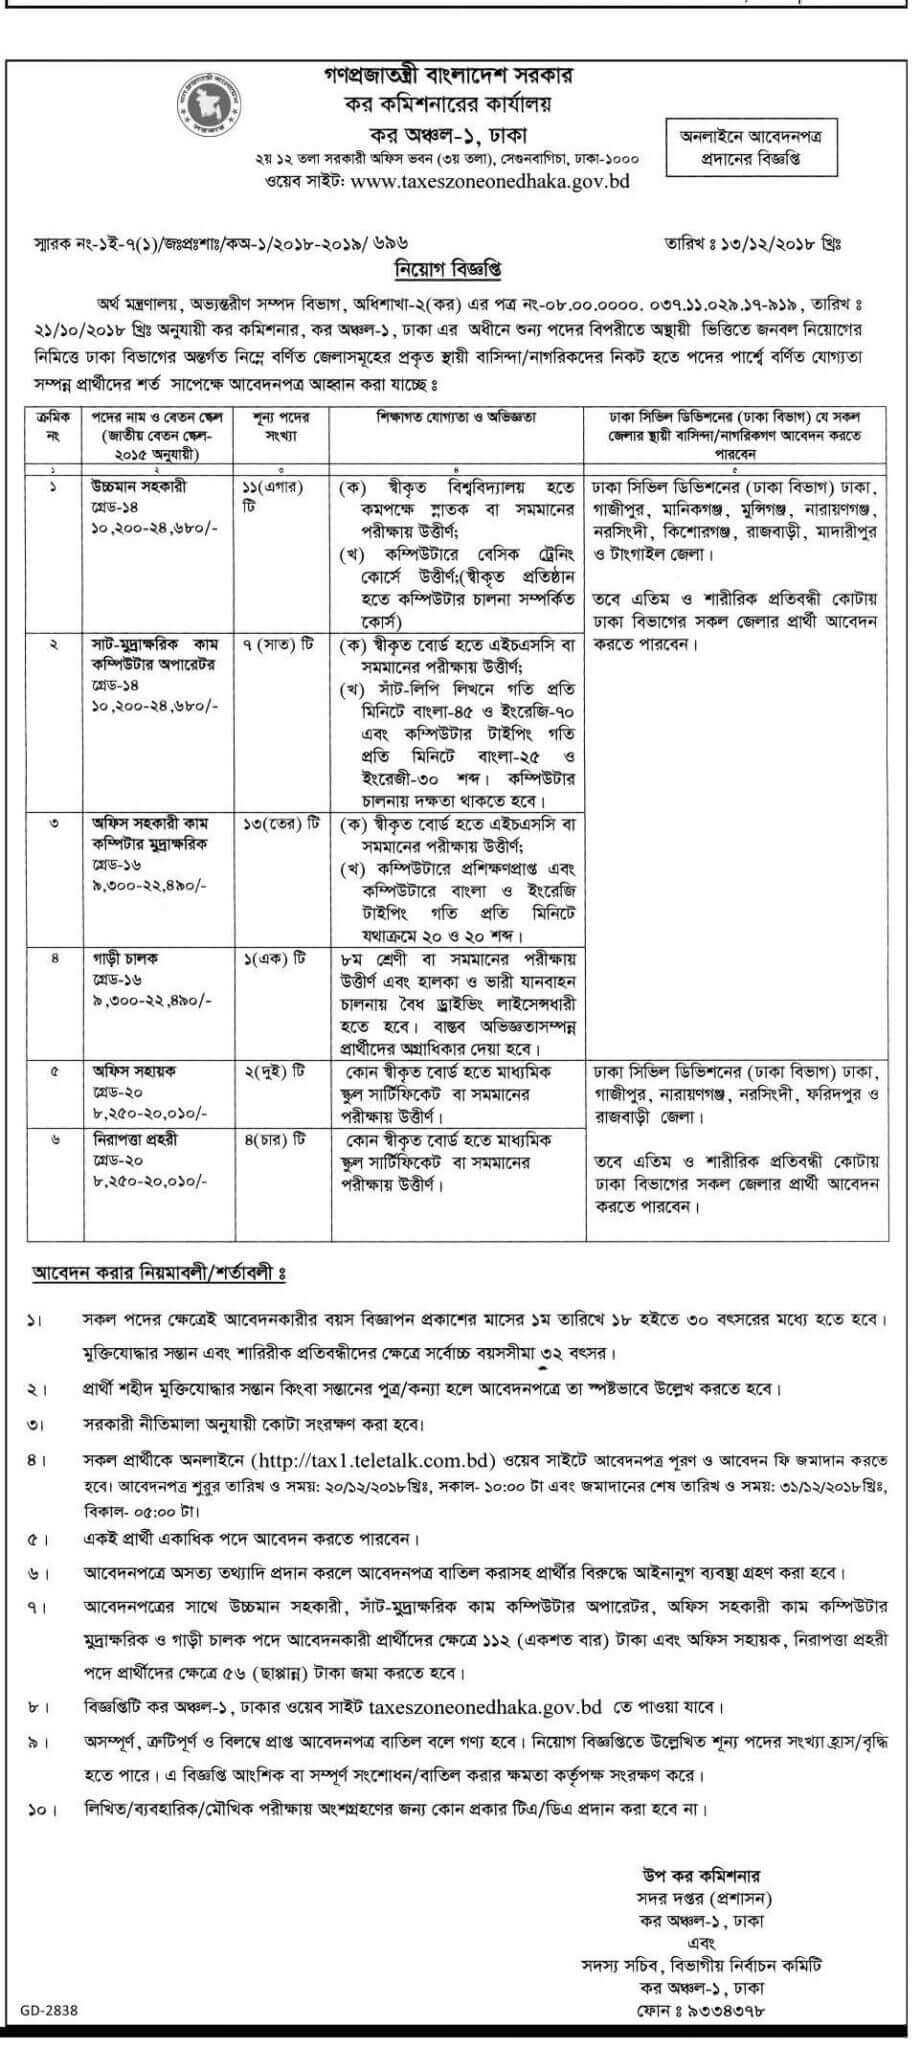 Tax Commissioner Office Job Circular 2018Tax Commissioner Office Job Circular 2018